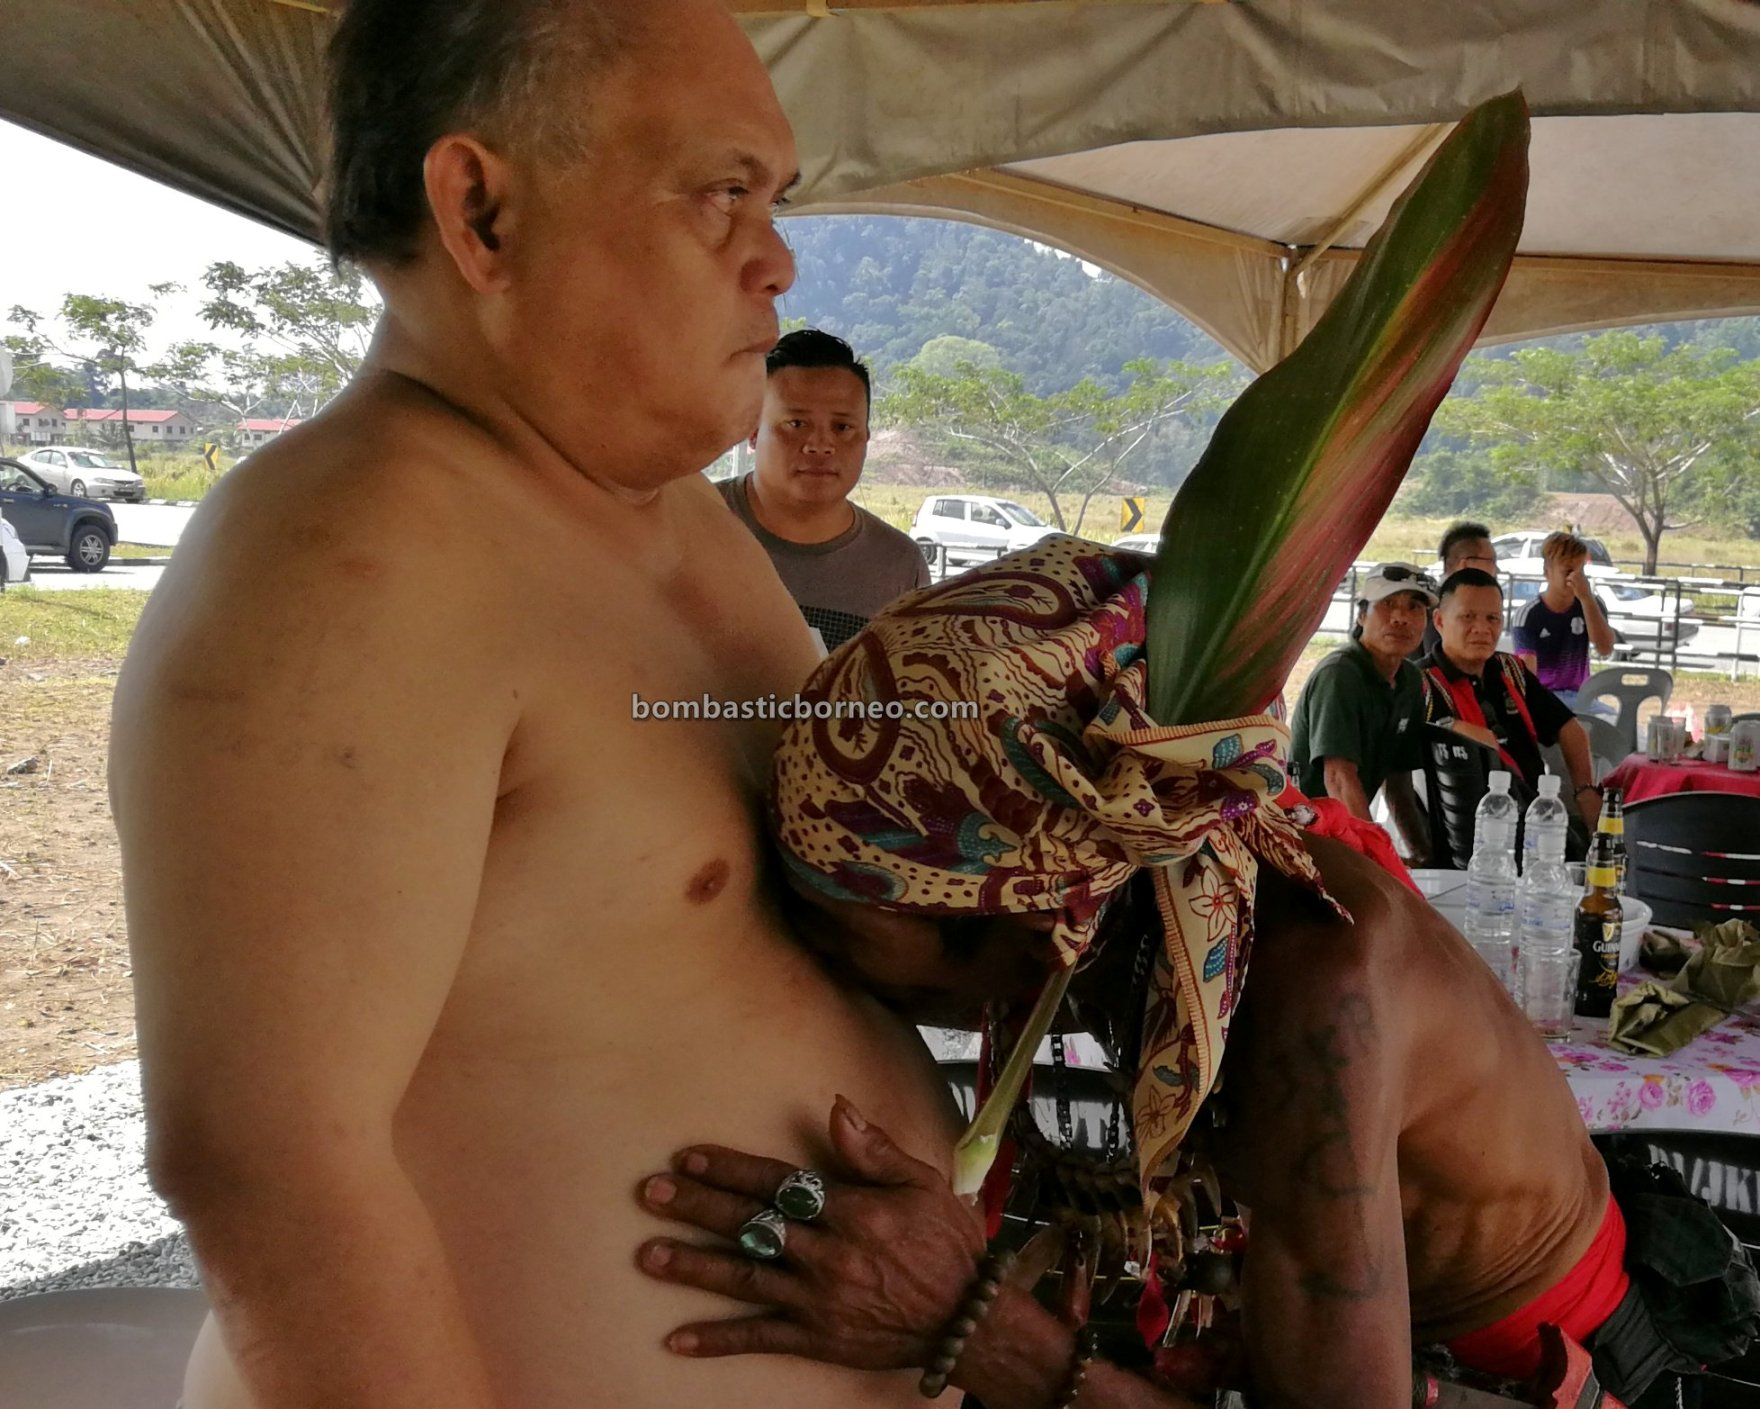 Pesta Nyarok Biya, Bengoh Dam Resettlement Scheme, event, culture, Ethnic, native, indigenous, Gawai Nyobeng, Borneo, Kuching, Padawan, Tourism, travel guide, 探索婆罗洲比达友族, 砂拉越原住民丰收节